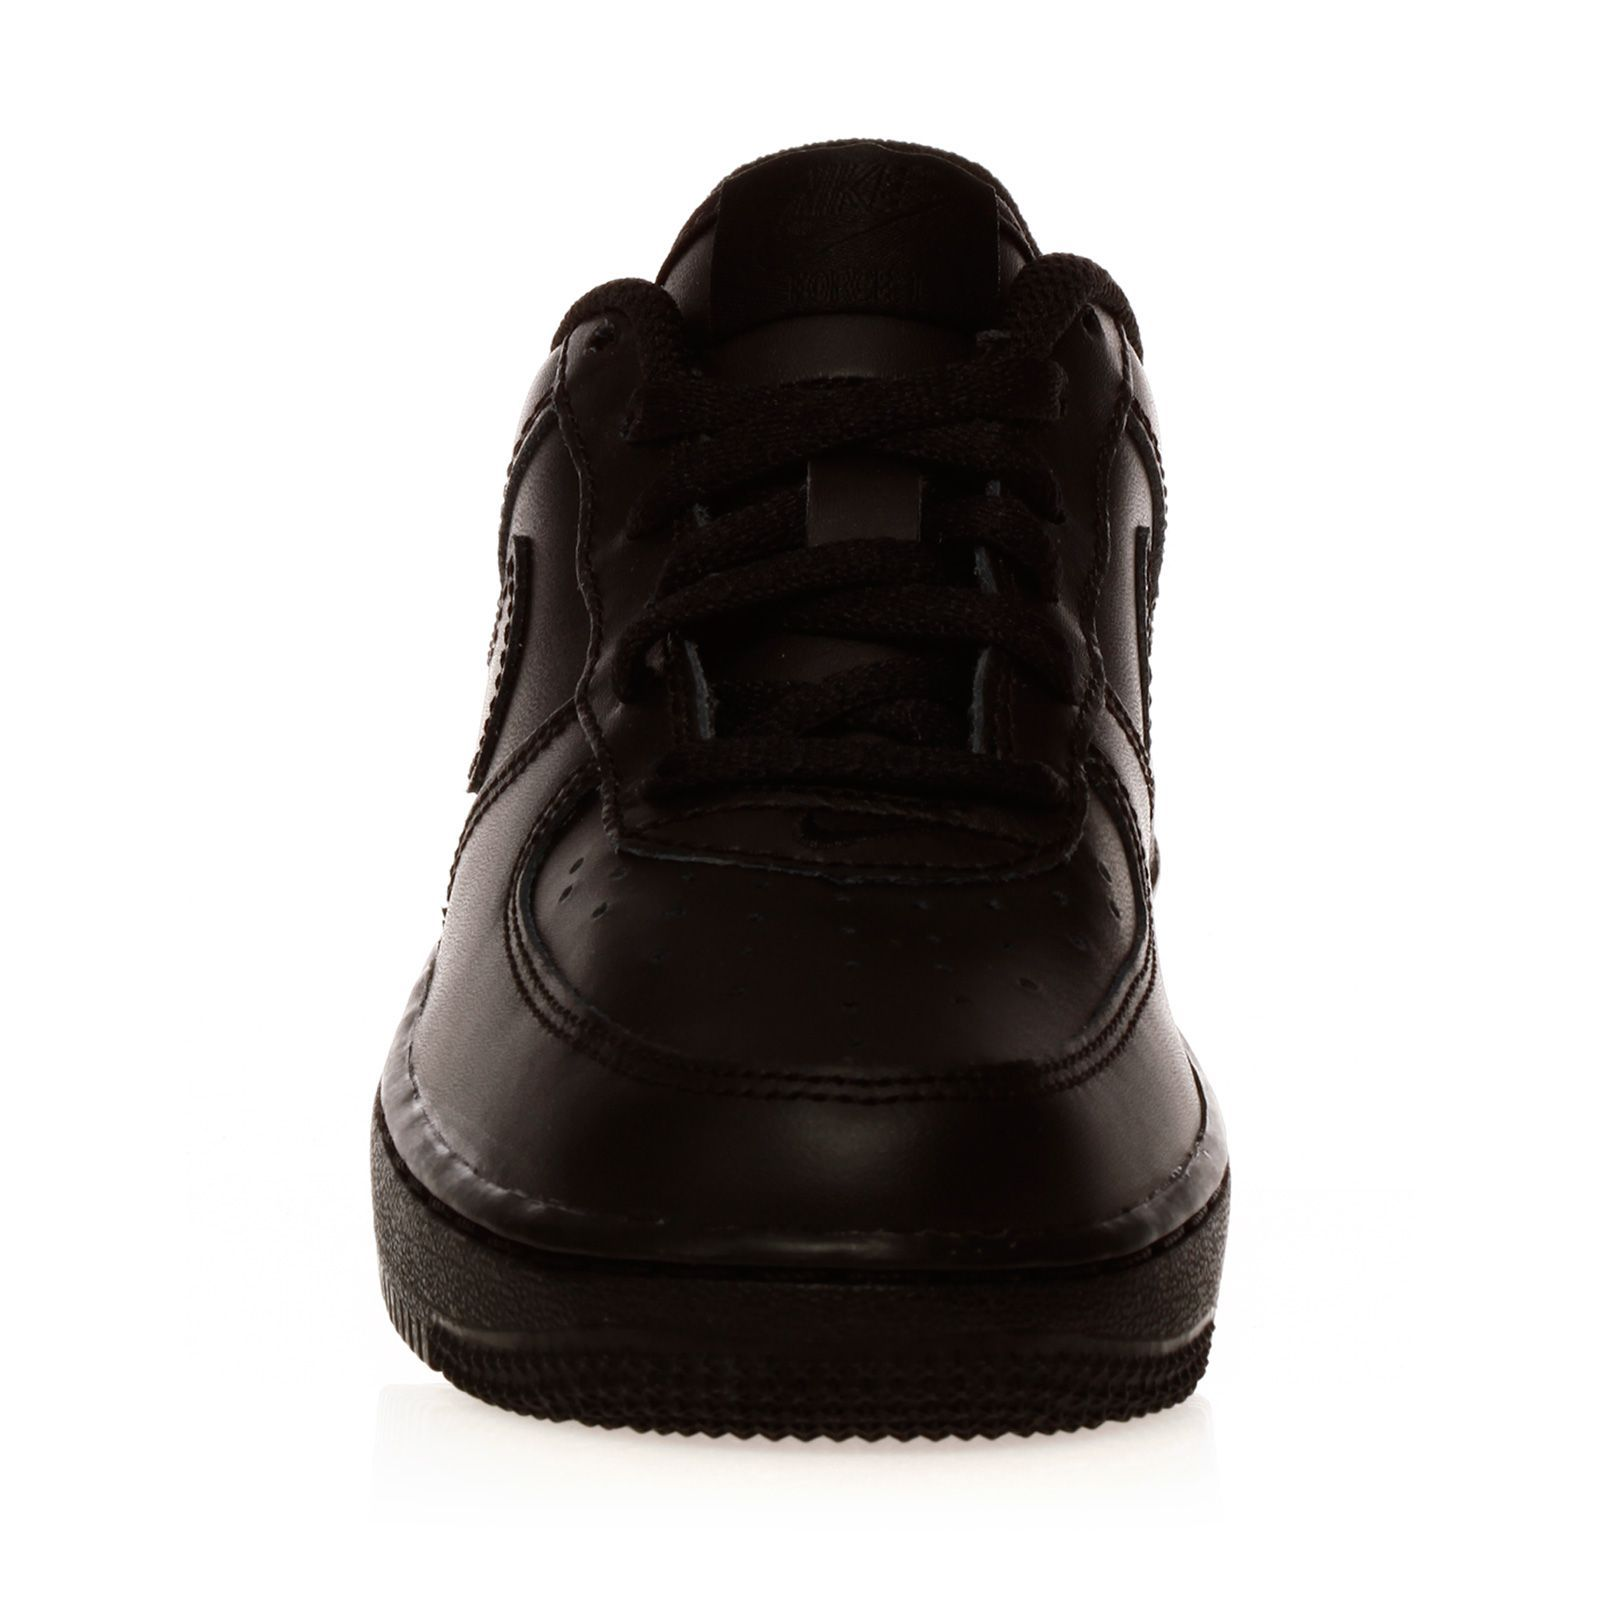 reputable site 68035 9a5e1 chaussure air force 1 mid 07 pour